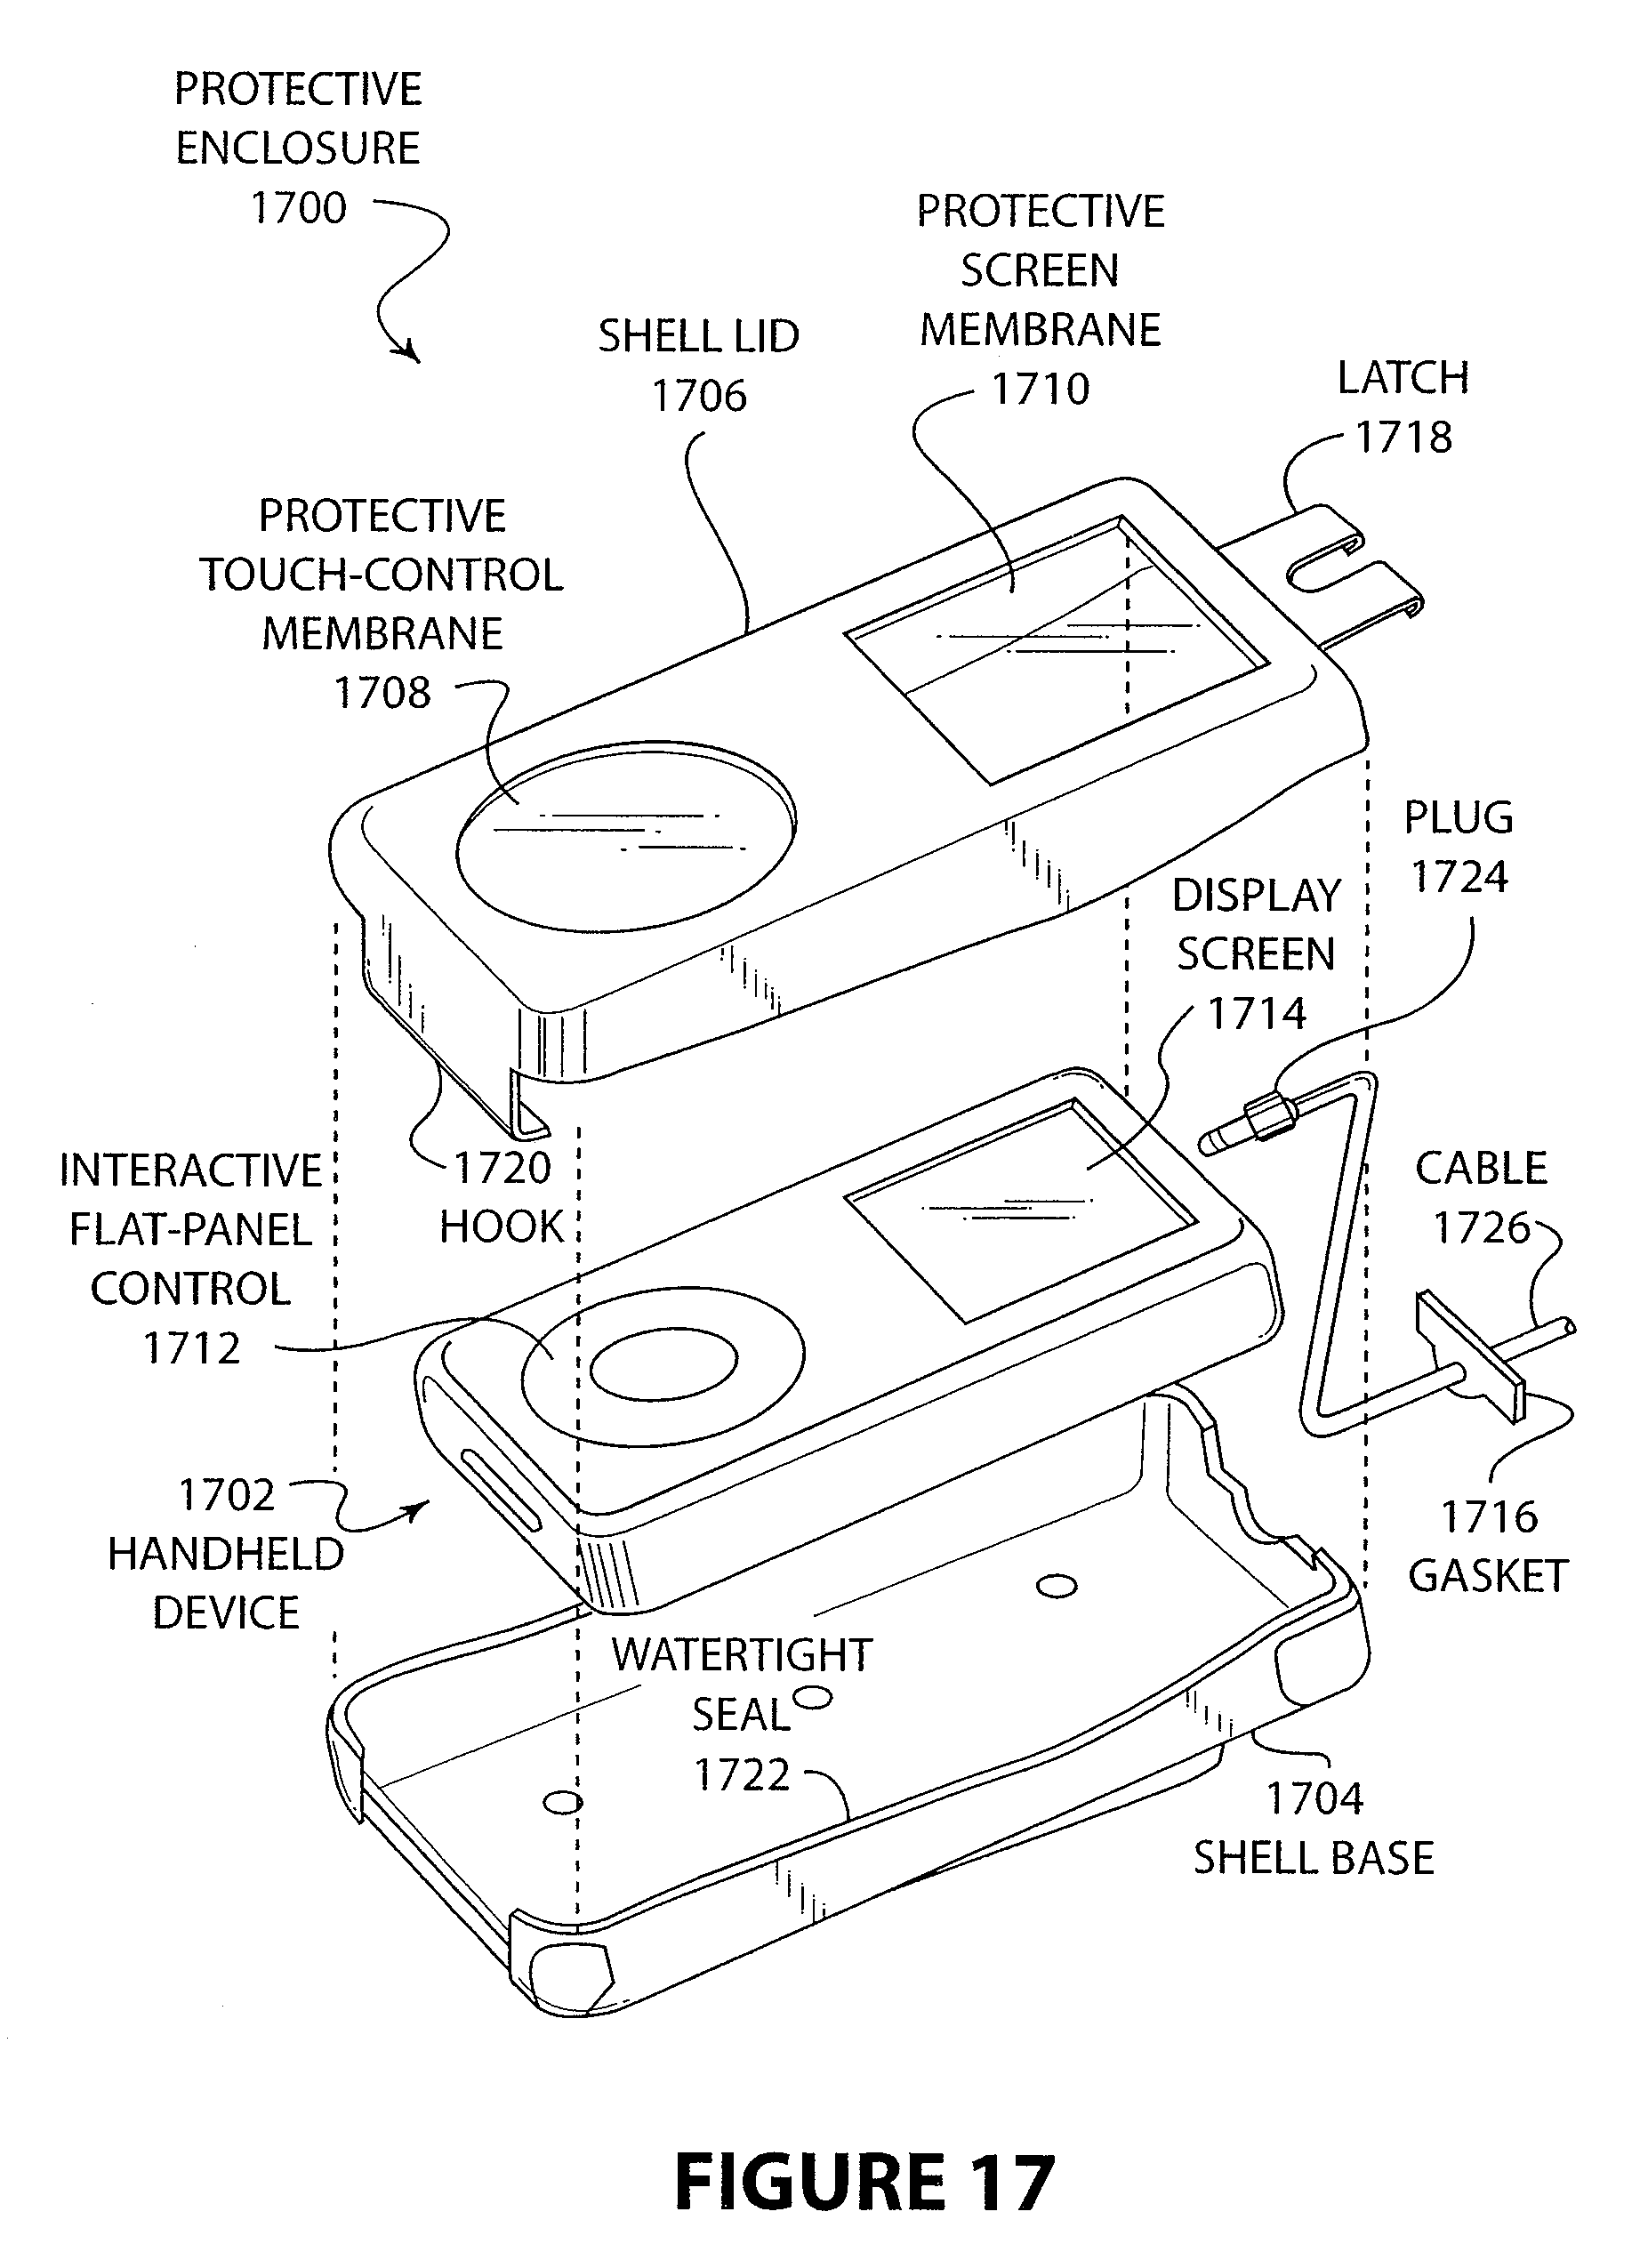 patent us 7 312 984 b2 Interactive Diagram of the Boot Process petitions